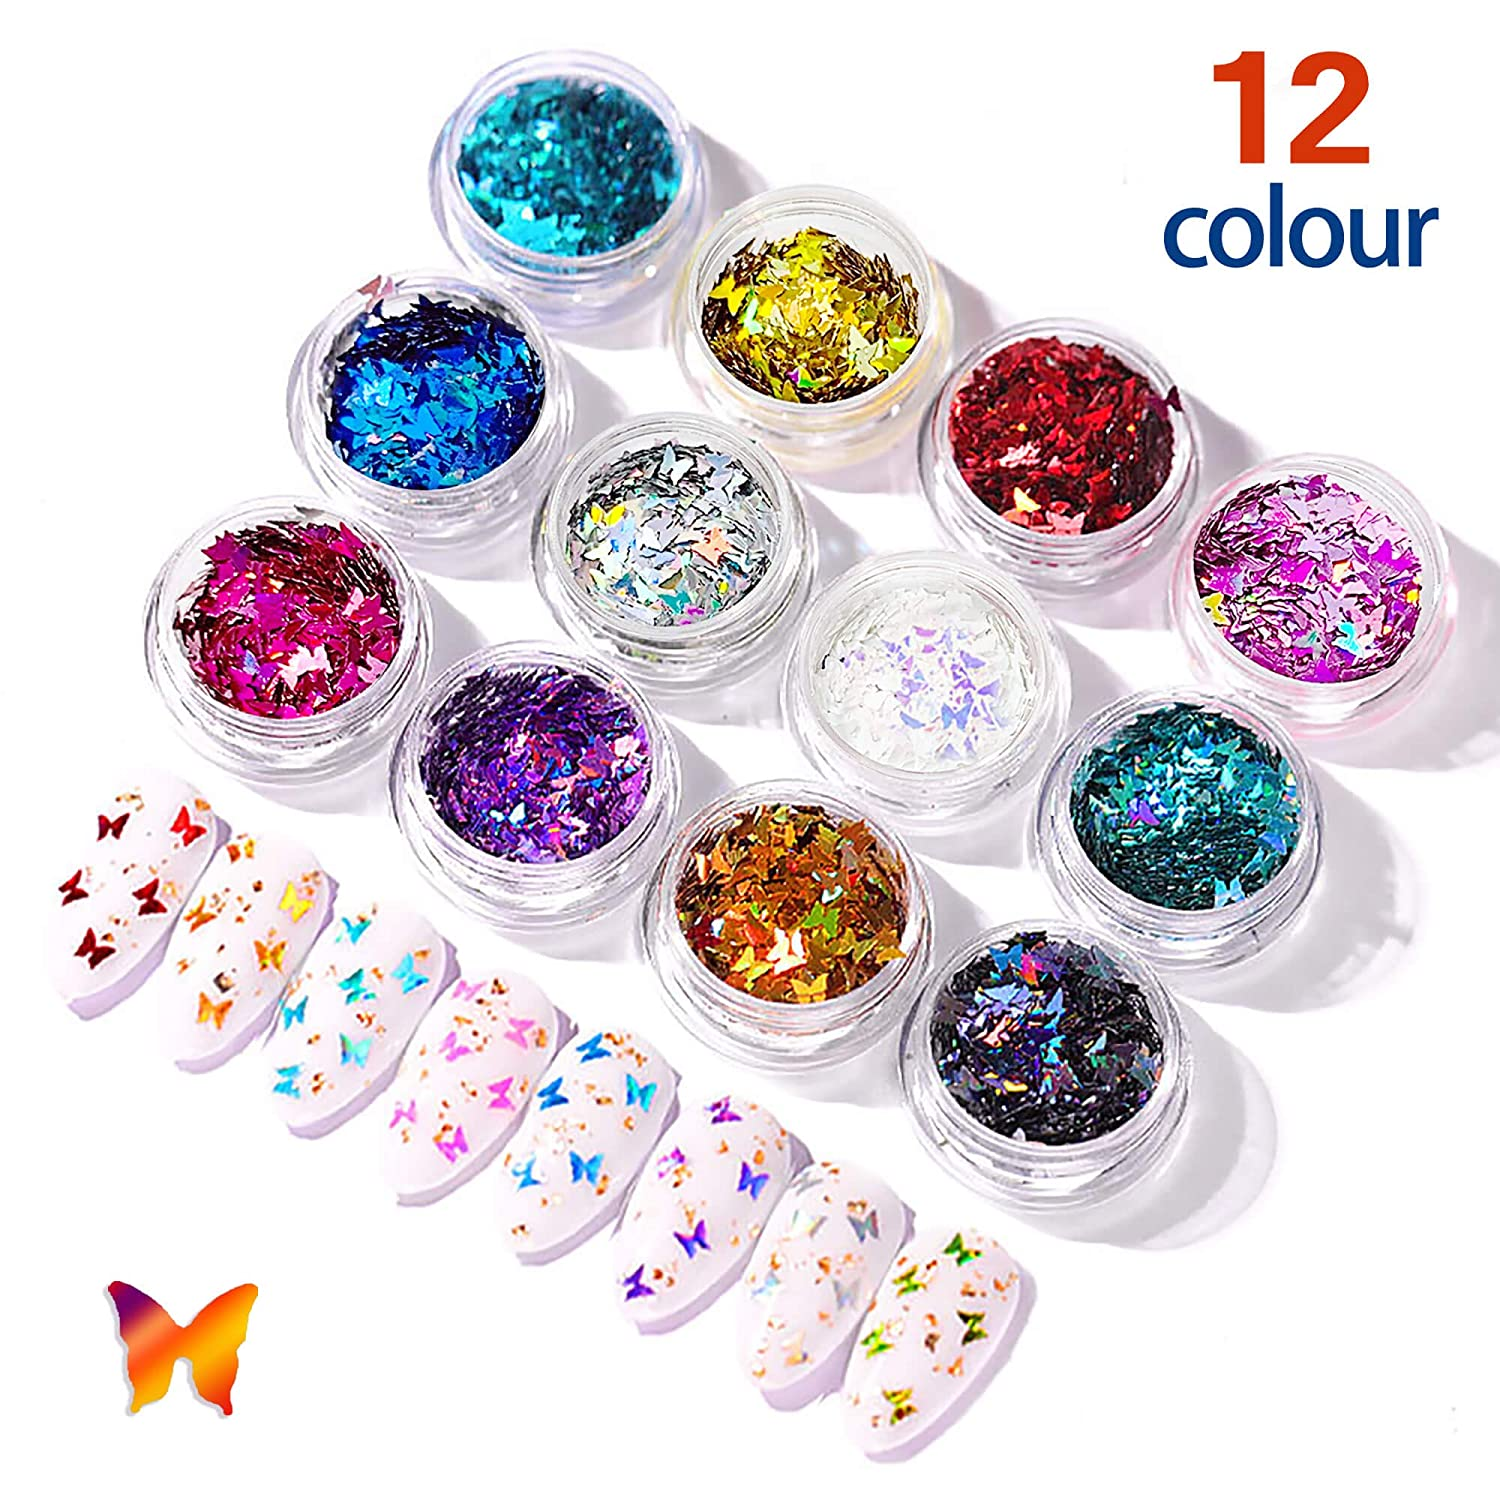 Butterfly Nail Art Glitter Sequins - 3D Laser Holographic Acrylic Nail Design Accessories Iridescent Nail Glitter Flakes Decorations for Make Up Body Face Hair Eye Decor Butterflies Shaped - 12 Color: Beauty